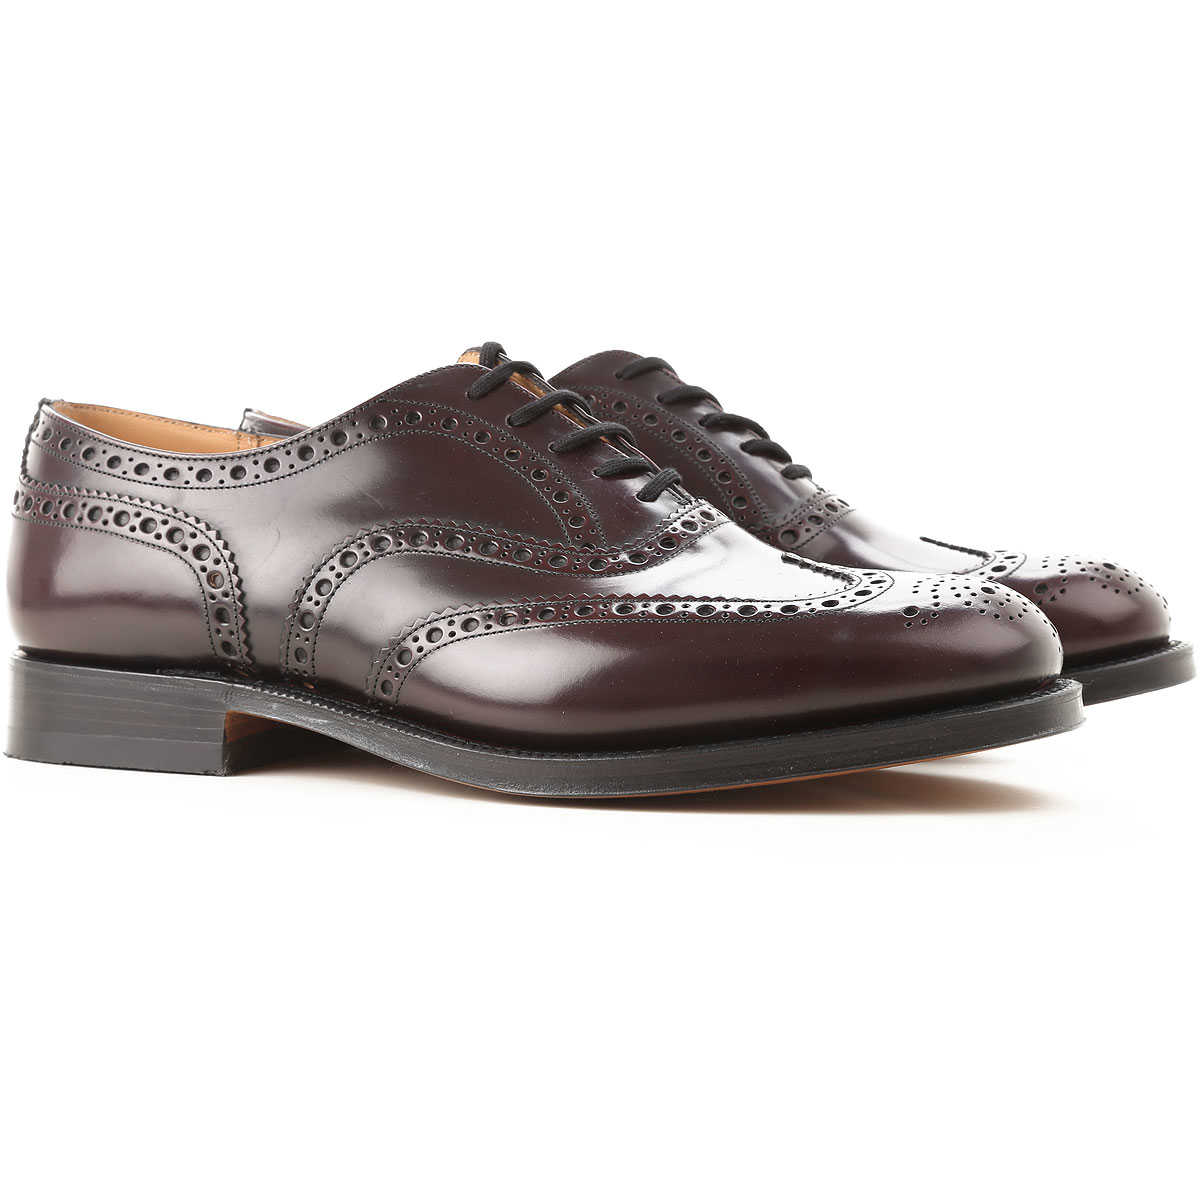 Brogue Shoes On Sale, Cordovan, Leather